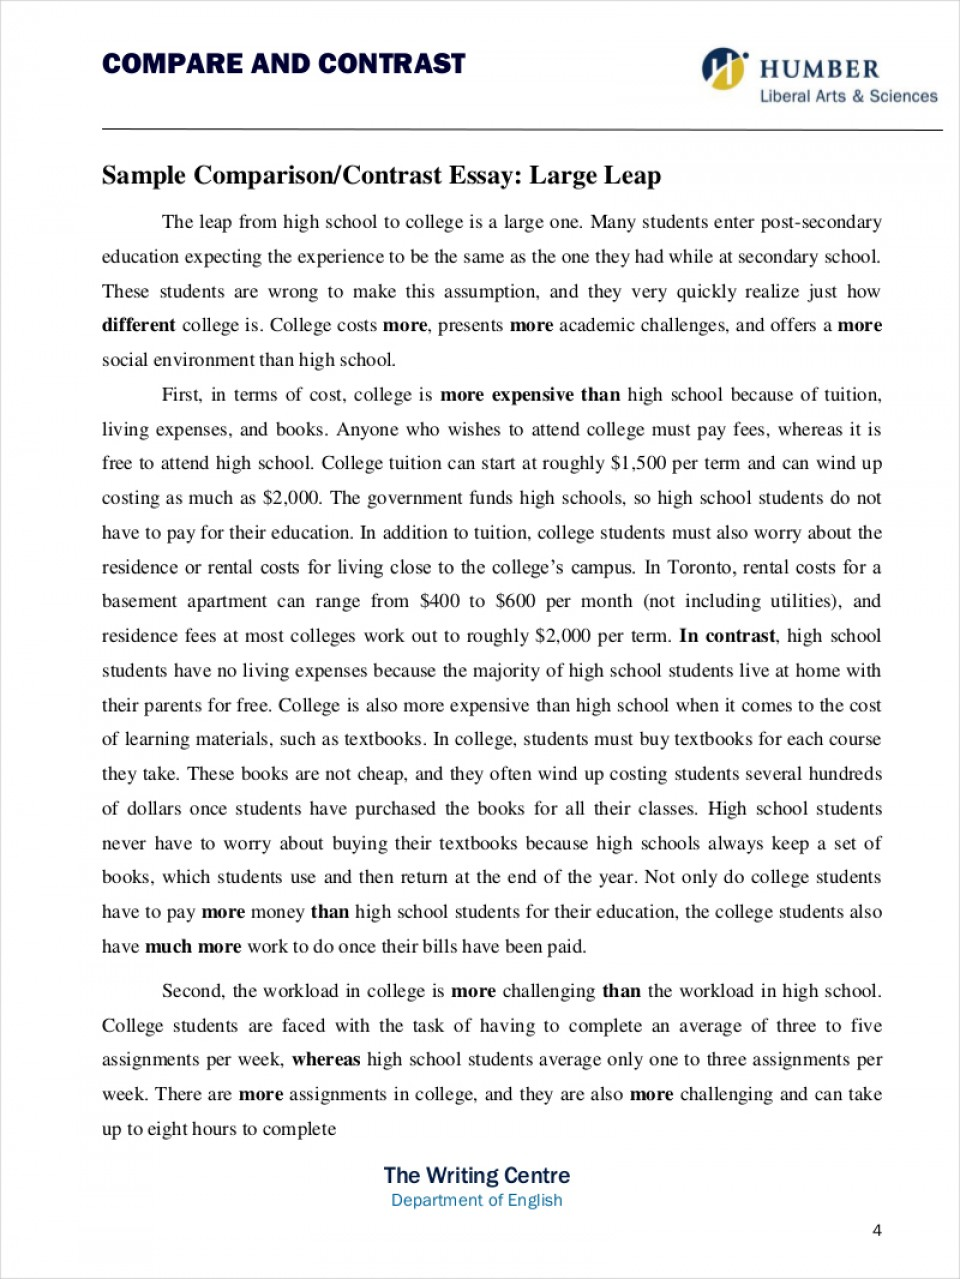 006 Compare And Contrast Essay Examples Comparative Samples Free Pdf Format Download Throughout Comparison Thesis Coles Thecolossus Co Within Ex 5th Grade 4th 6th 3rd Magnificent 9th For Elementary Students Topics 960